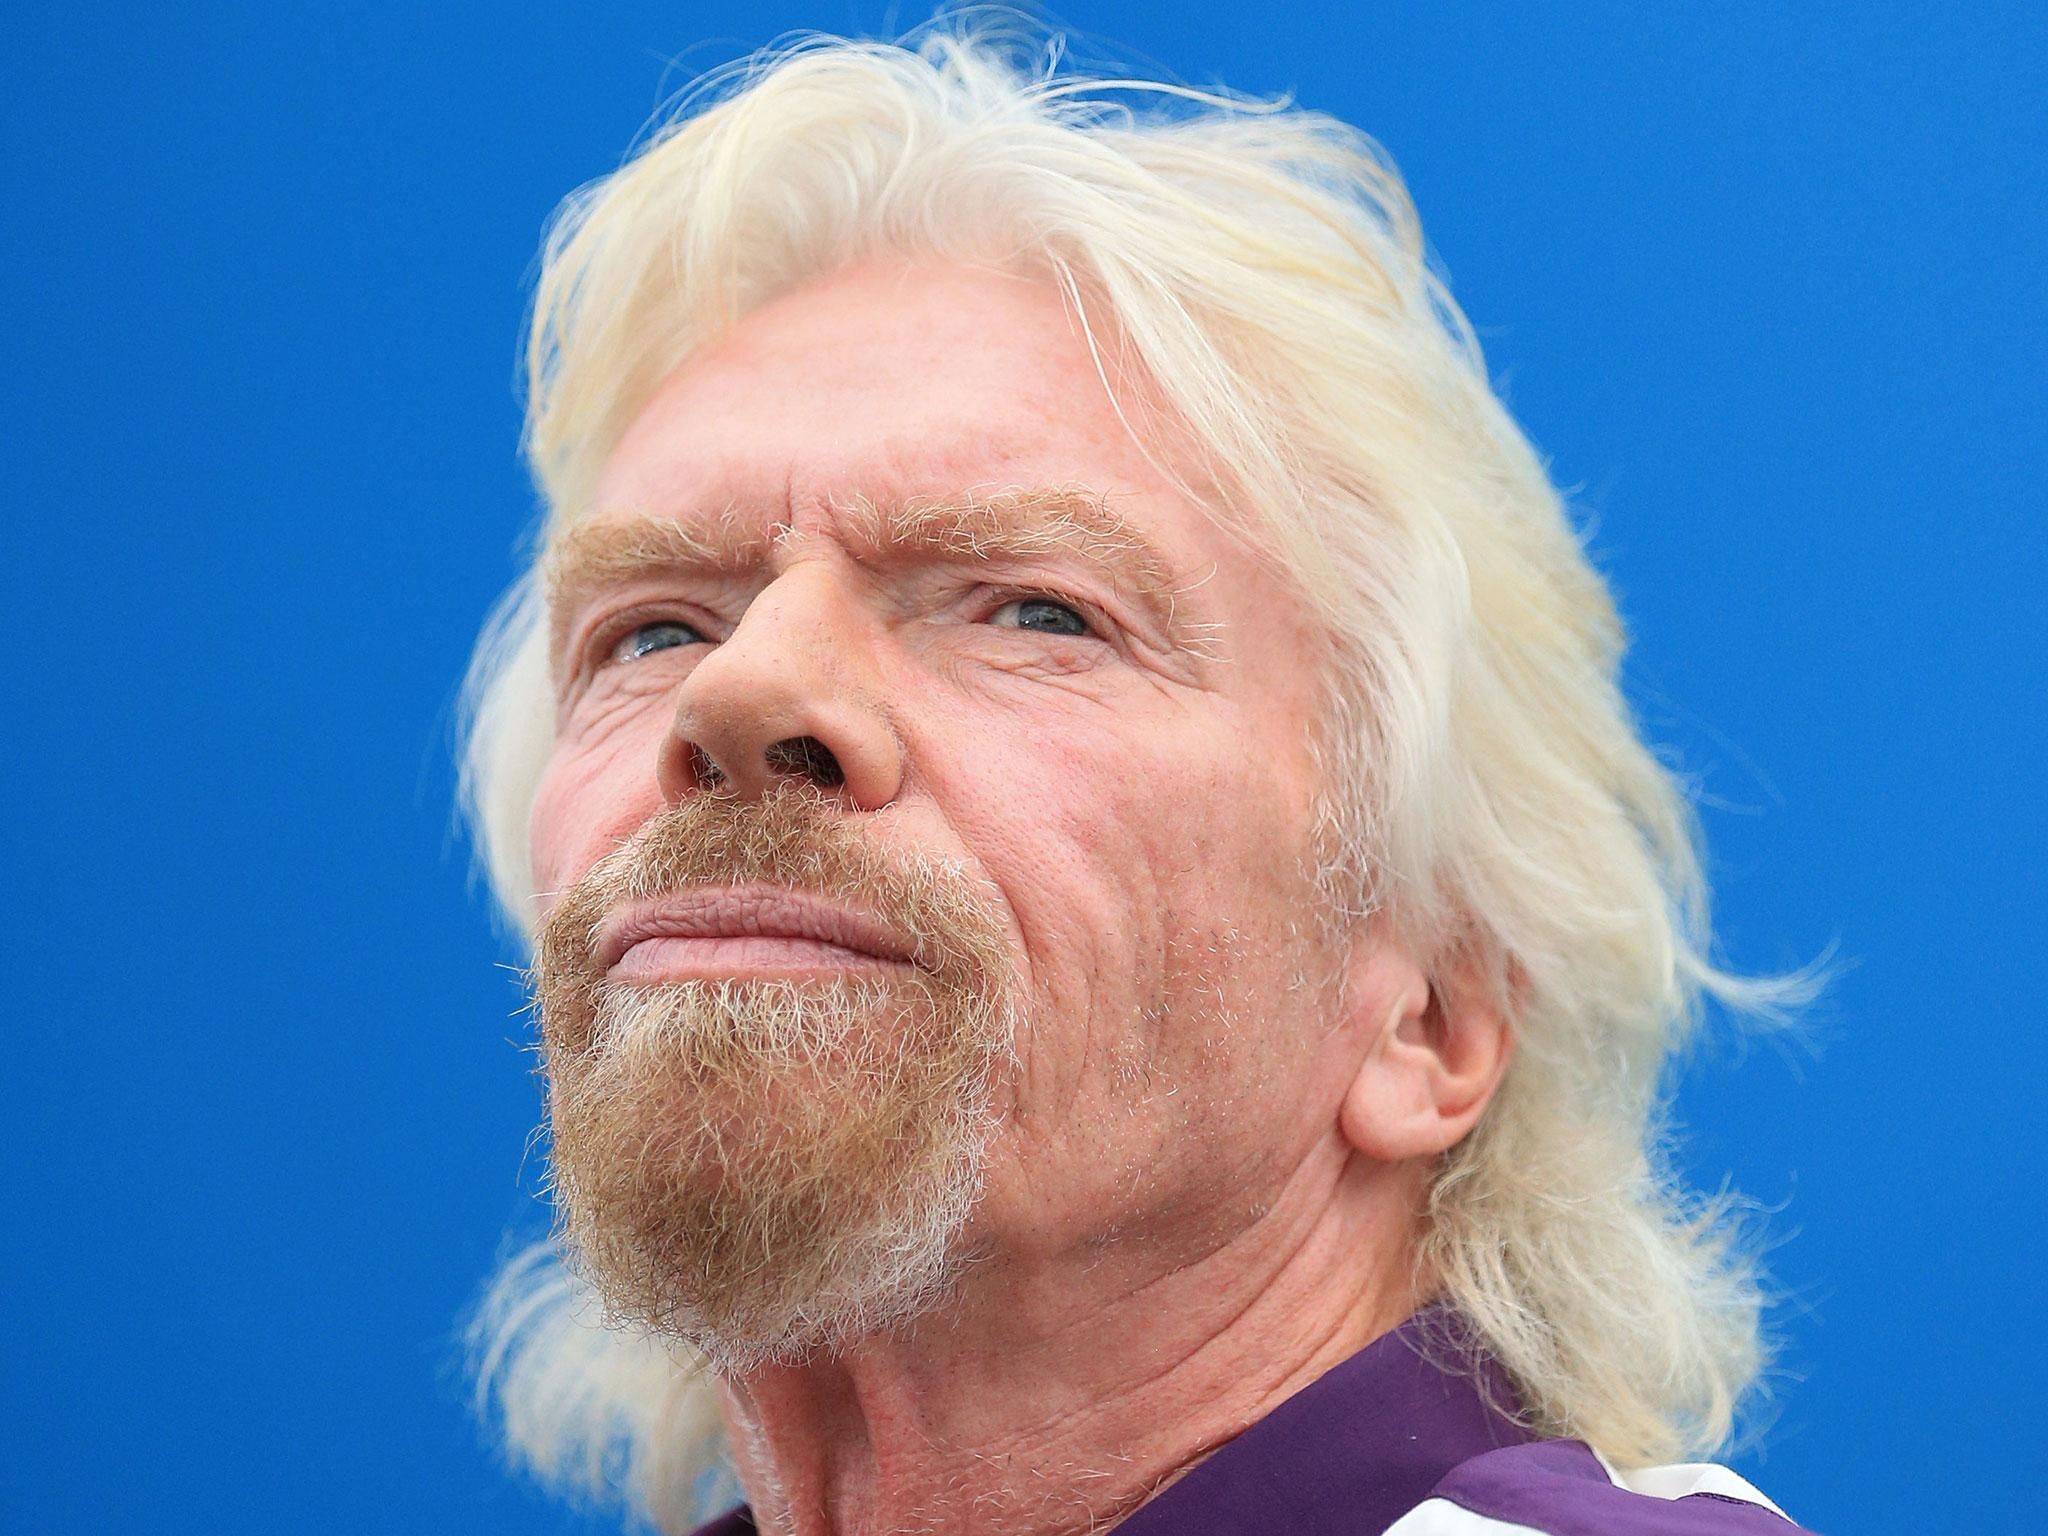 Sir Richard Branson calls for second EU referendum based on 'real facts' | The Independent